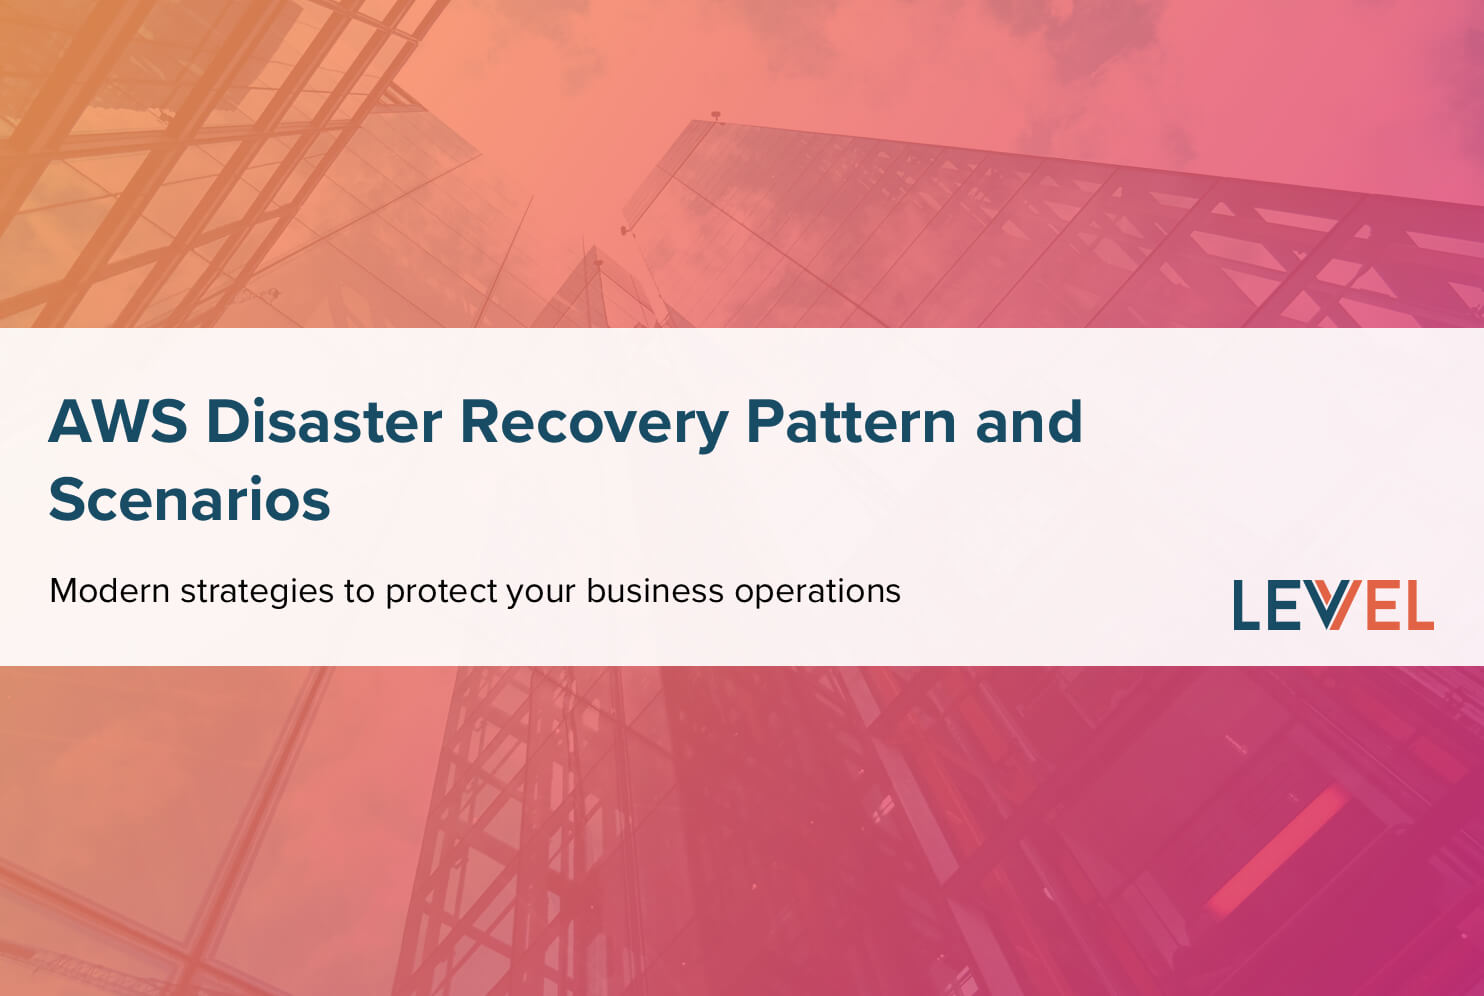 AWS Disaster Recovery Pattern and Scenarios